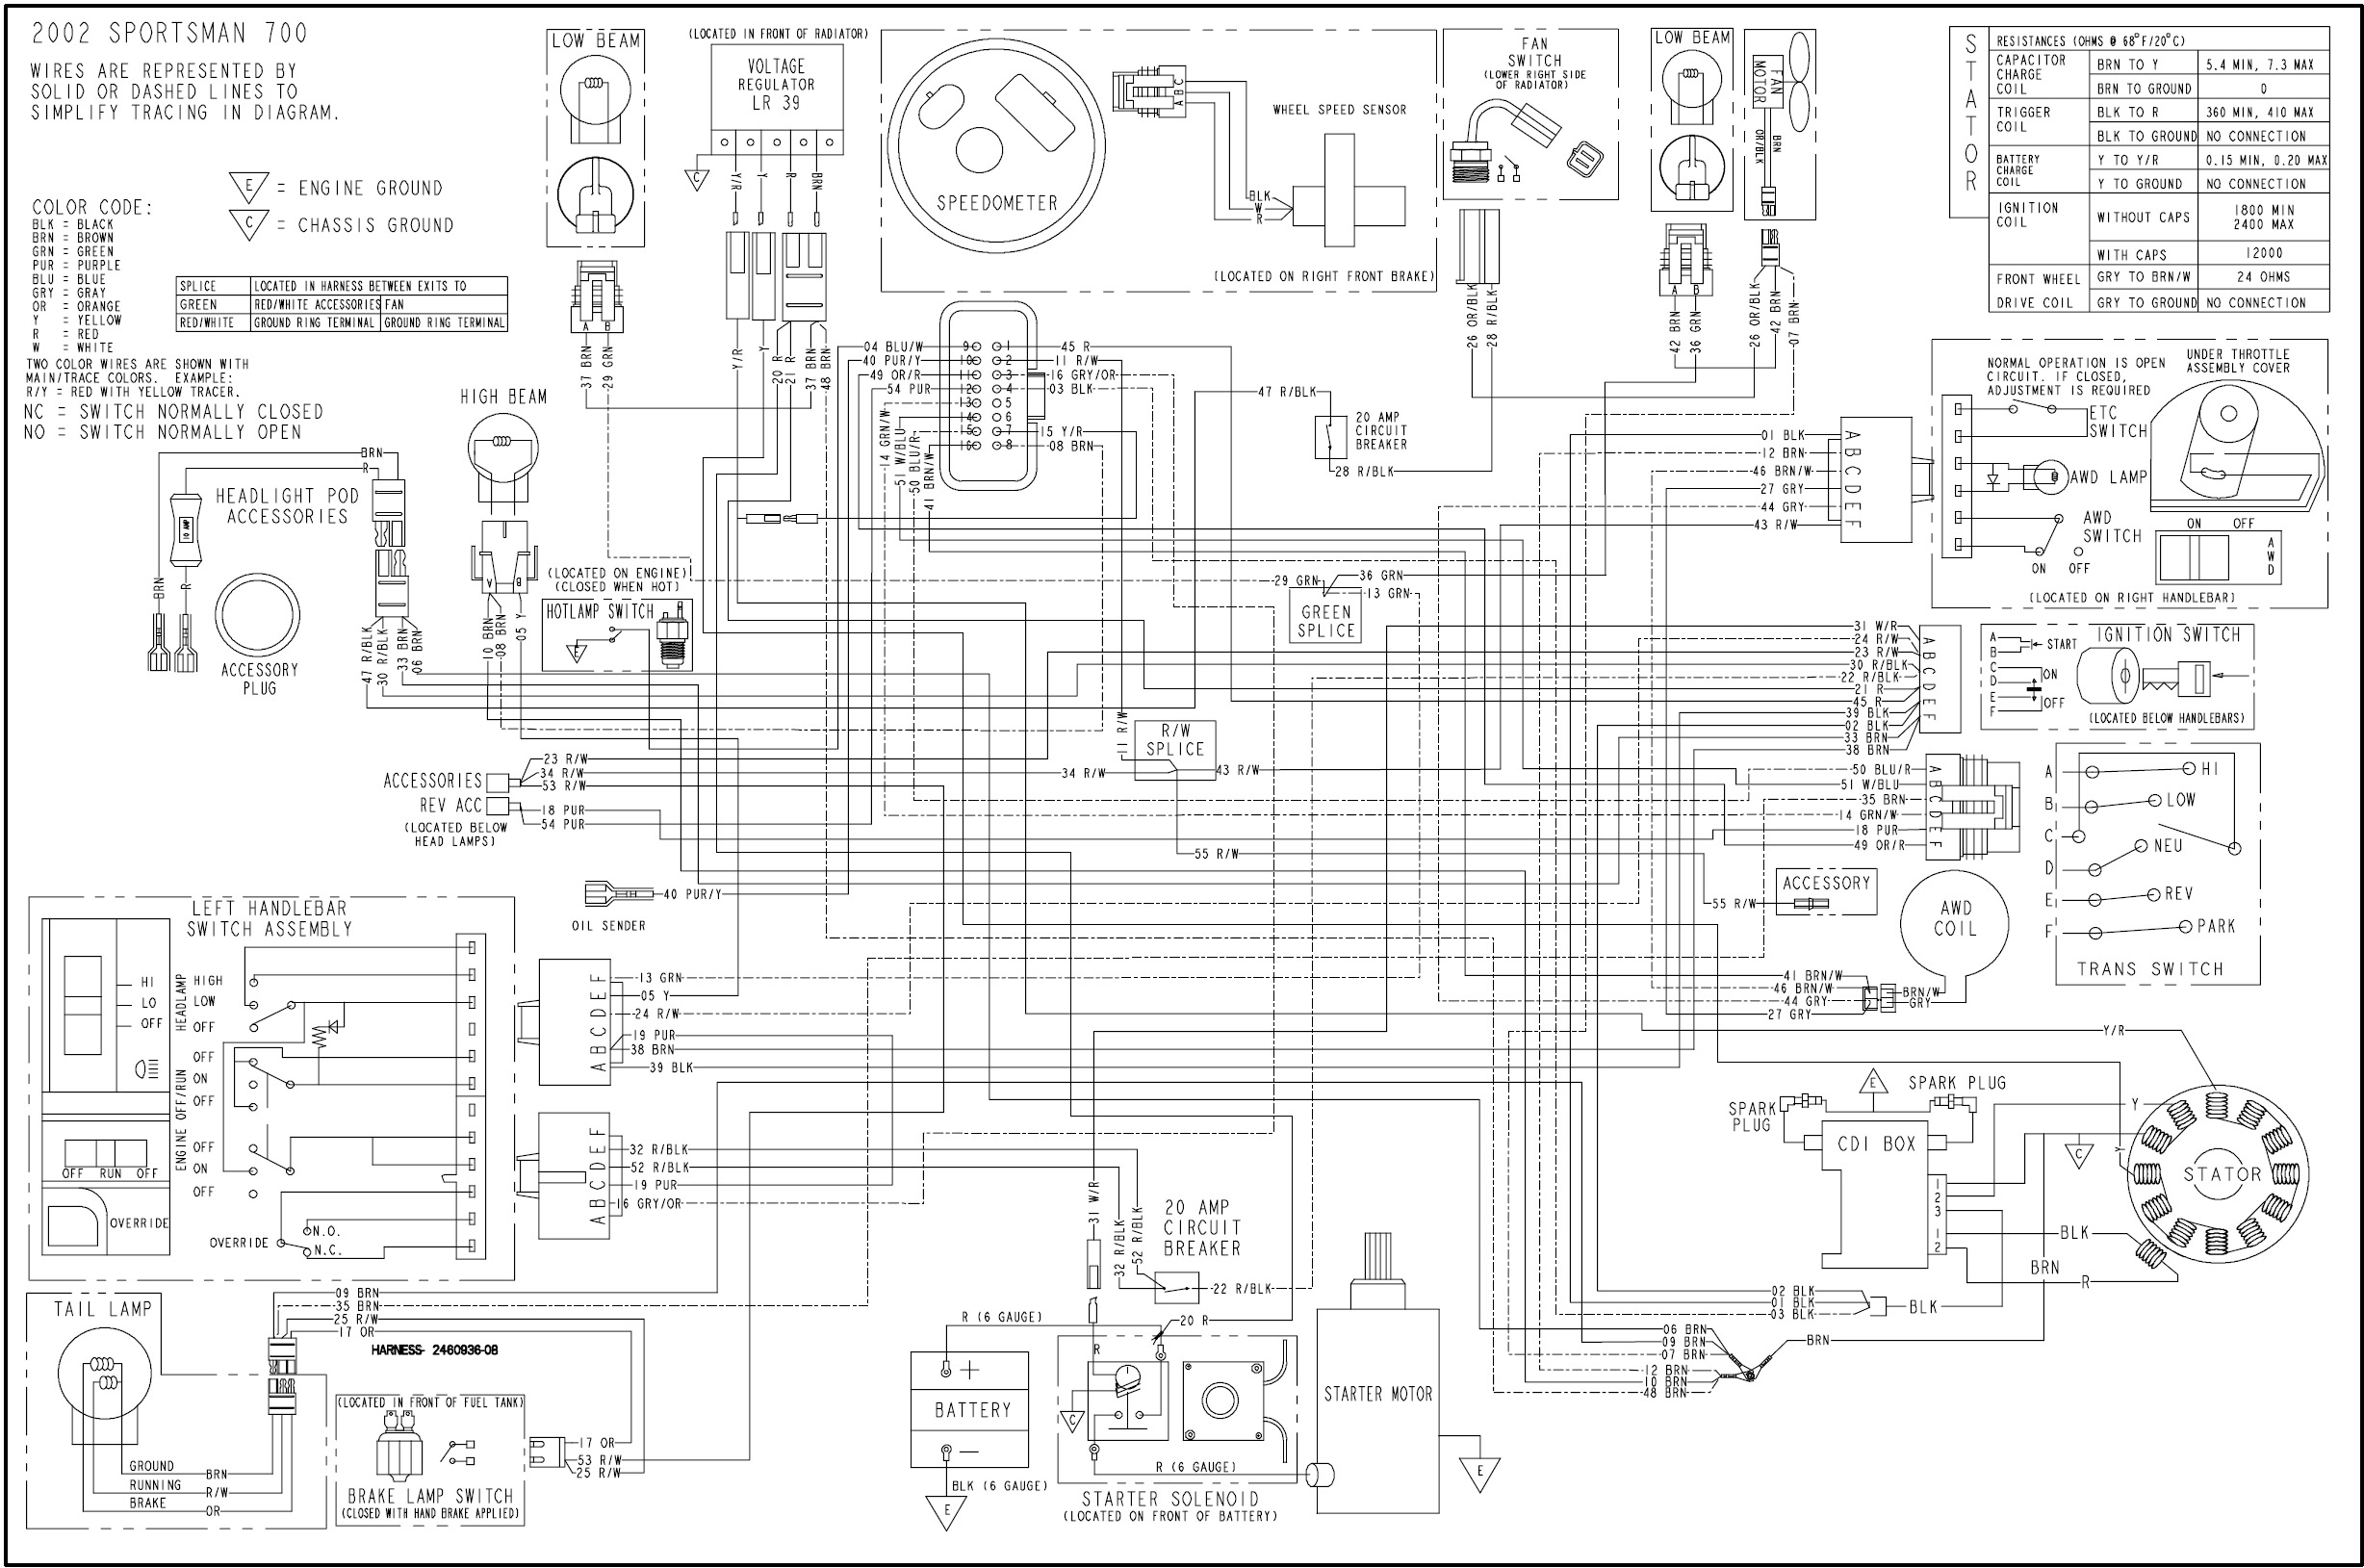 2012 Polaris Ranger 800 Wiring Diagram additionally 354209 Opt Trailblazer 250 Stator Testing Wiring Diagram Interpretation as well RepairGuideContent likewise 1997 Infiniti Qx4 Wiring Diagram And Electrical System Service And Troubleshooting together with Honeywell Digital Thermostat Wiring Diagram Red Black White. on 2000 polaris wiring diagram